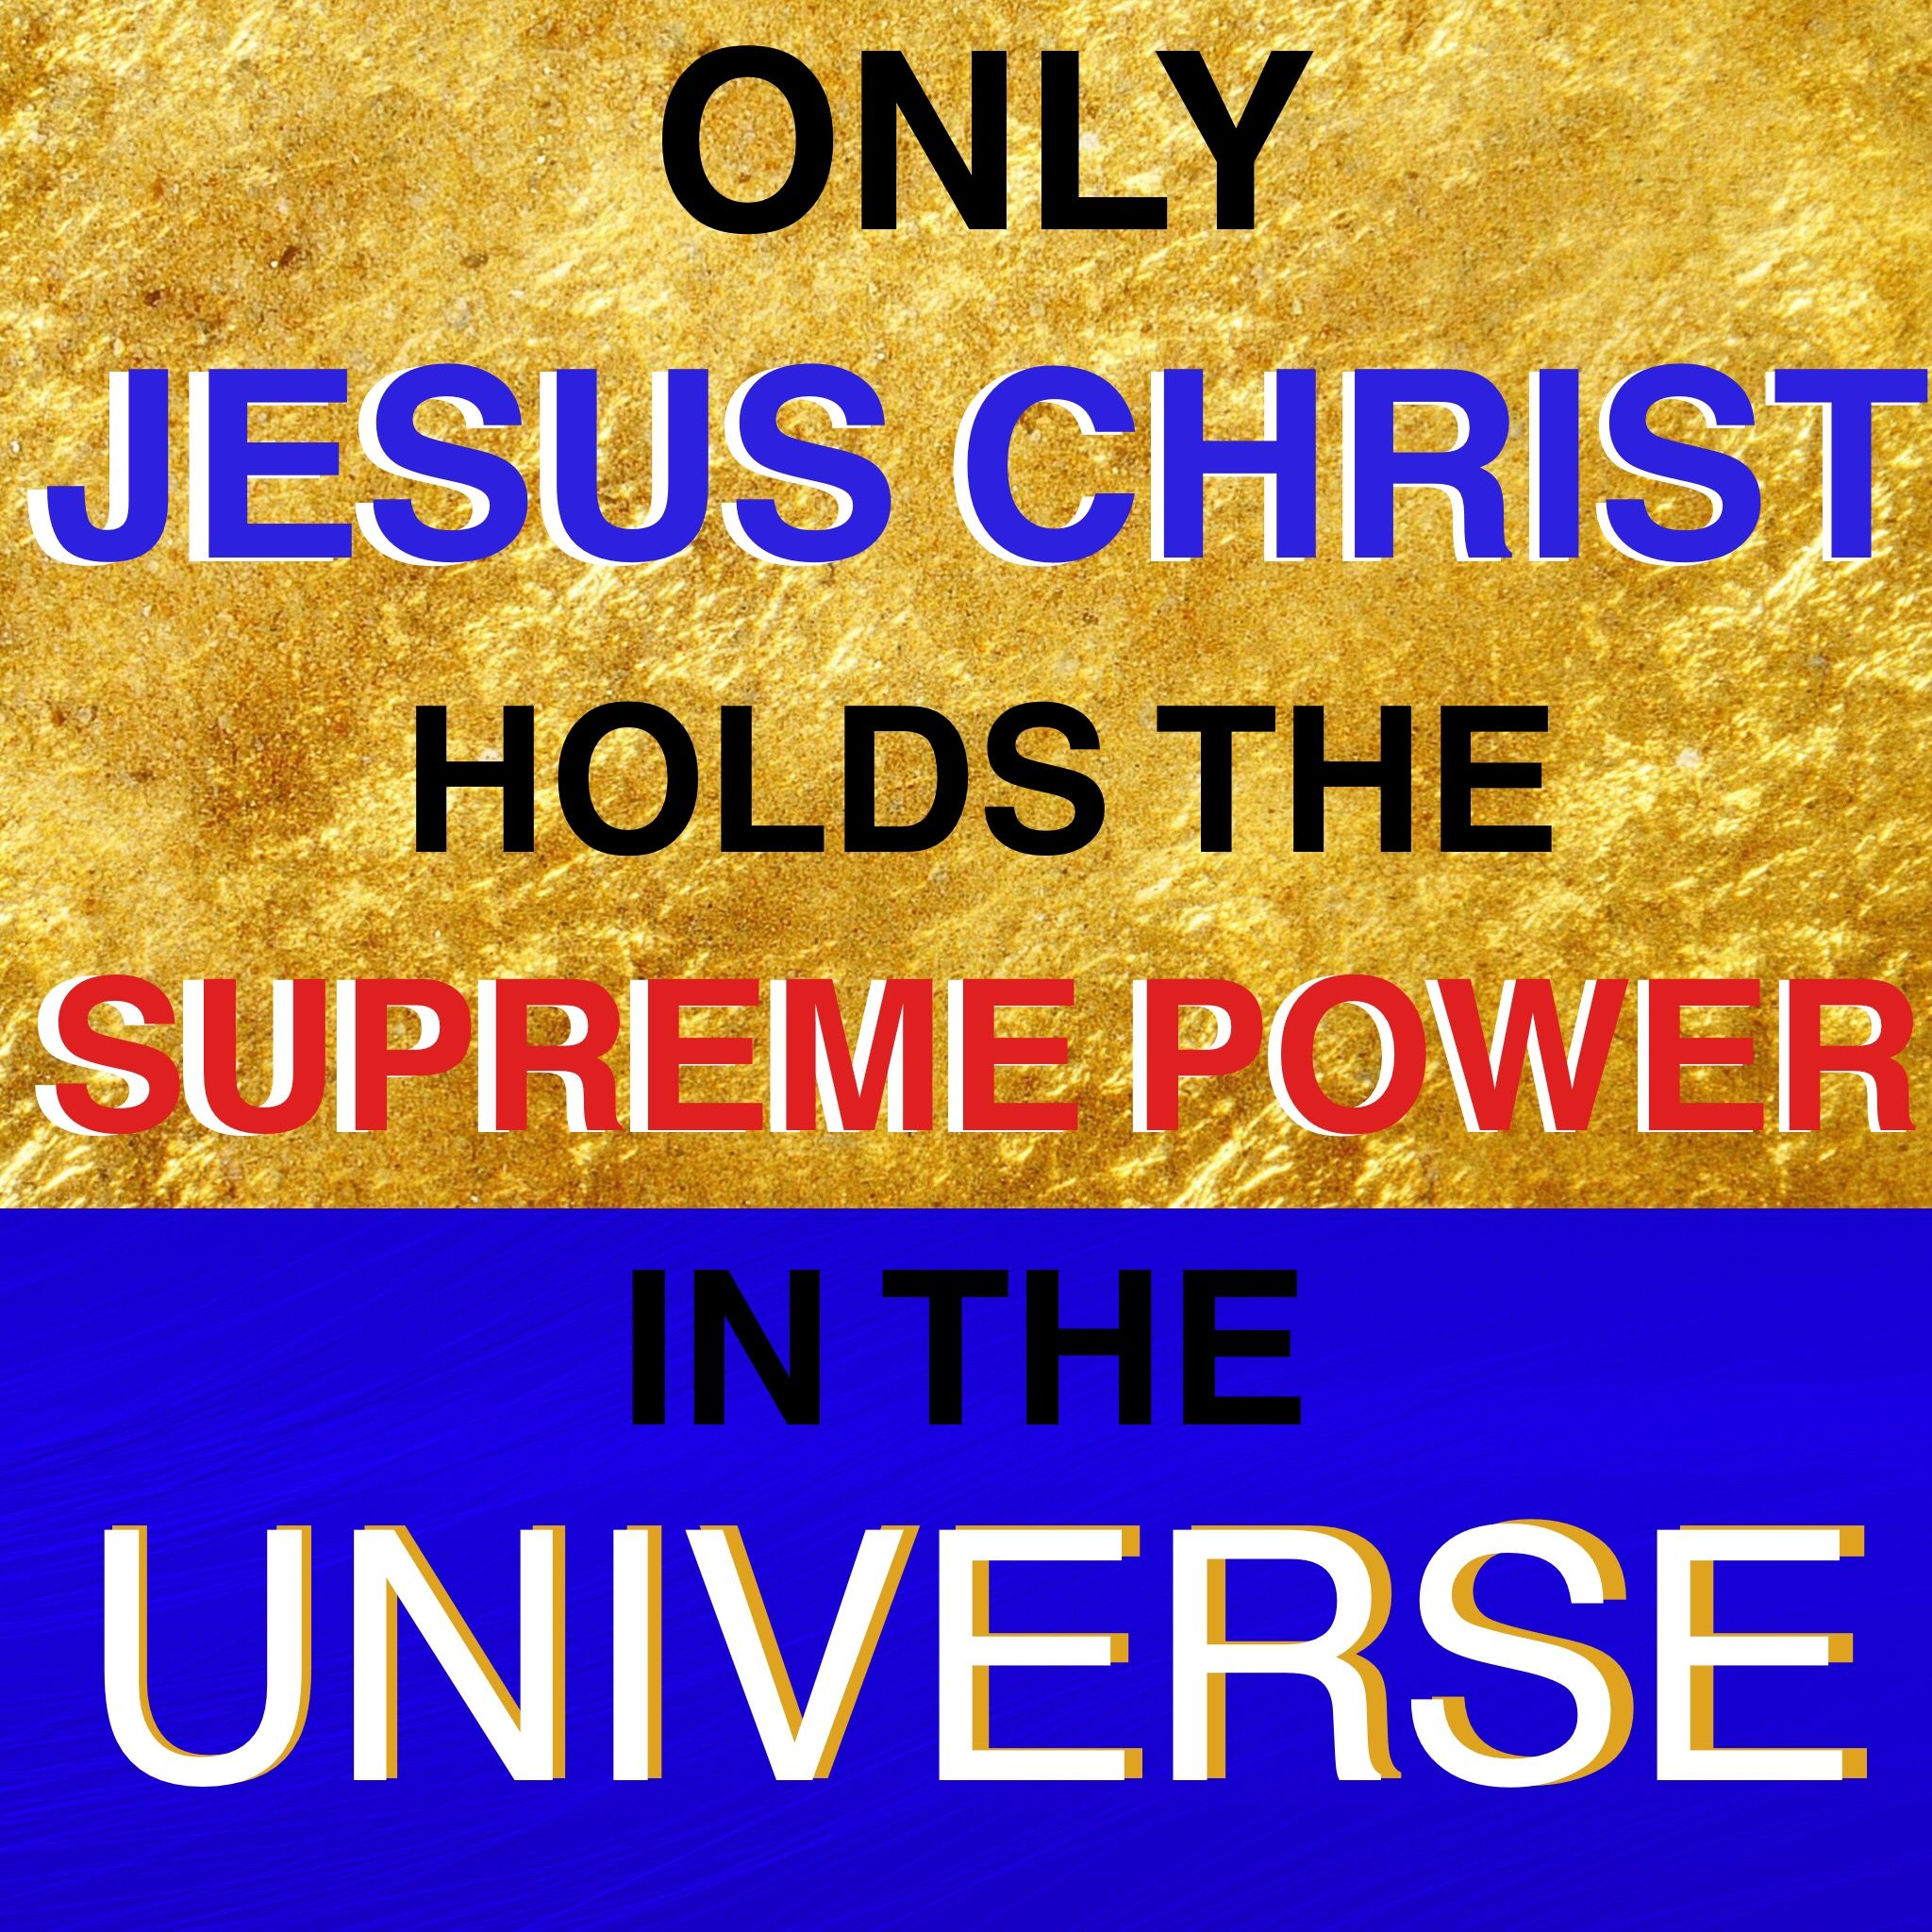 Only Jesus Christ Holds The Supreme Power In The Universe